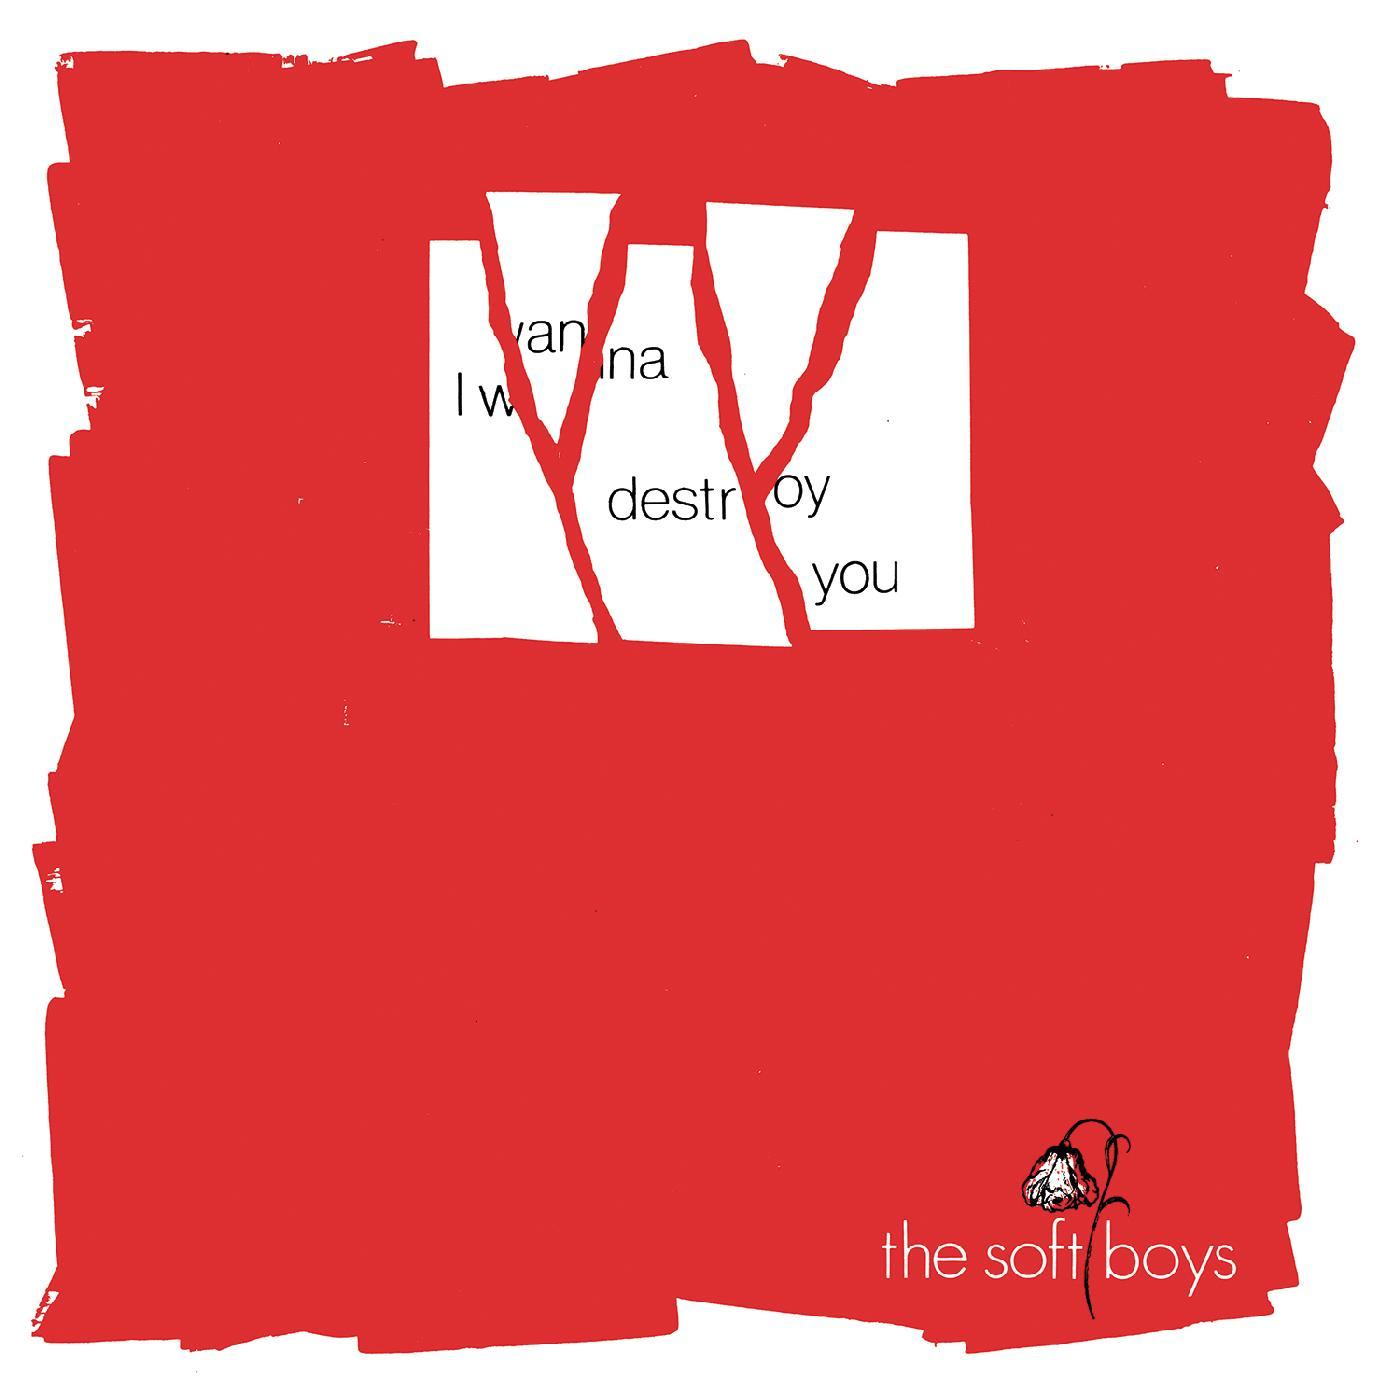 The Soft Boys - I Wanna Destroy You / Near The Soft Boys (40th Anniversary Edition) [RSD Drops Aug 2020]